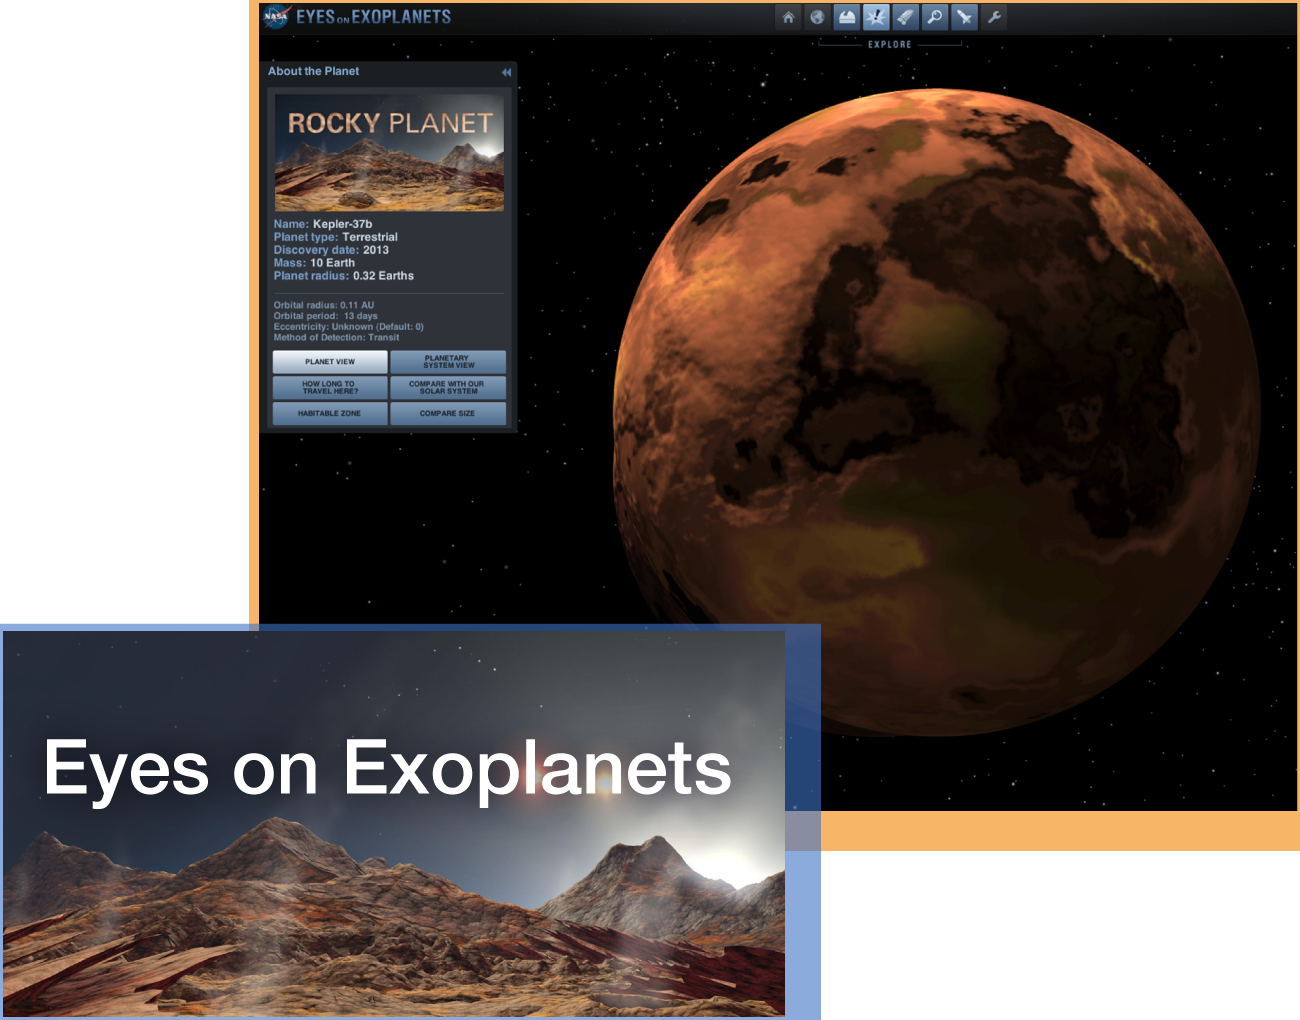 "Eyes on Exoplanets - Get set for launch. ""Eyes on Exoplanets"" will fly you to any planet you wish—as long as it's far beyond our solar system. This fully rendered 3D universe is scientifically accurate, allowing you to zoom in for a close look at more than 1,000 exotic planets known to orbit distant stars. ""Eyes on Exoplanets"" is powered by NASA's Exoplanet Archive, the official database used by professional astronomers engaged in exploring new worlds.Audience: All LearnersInteractive: Eyes on Exoplanets interactive"